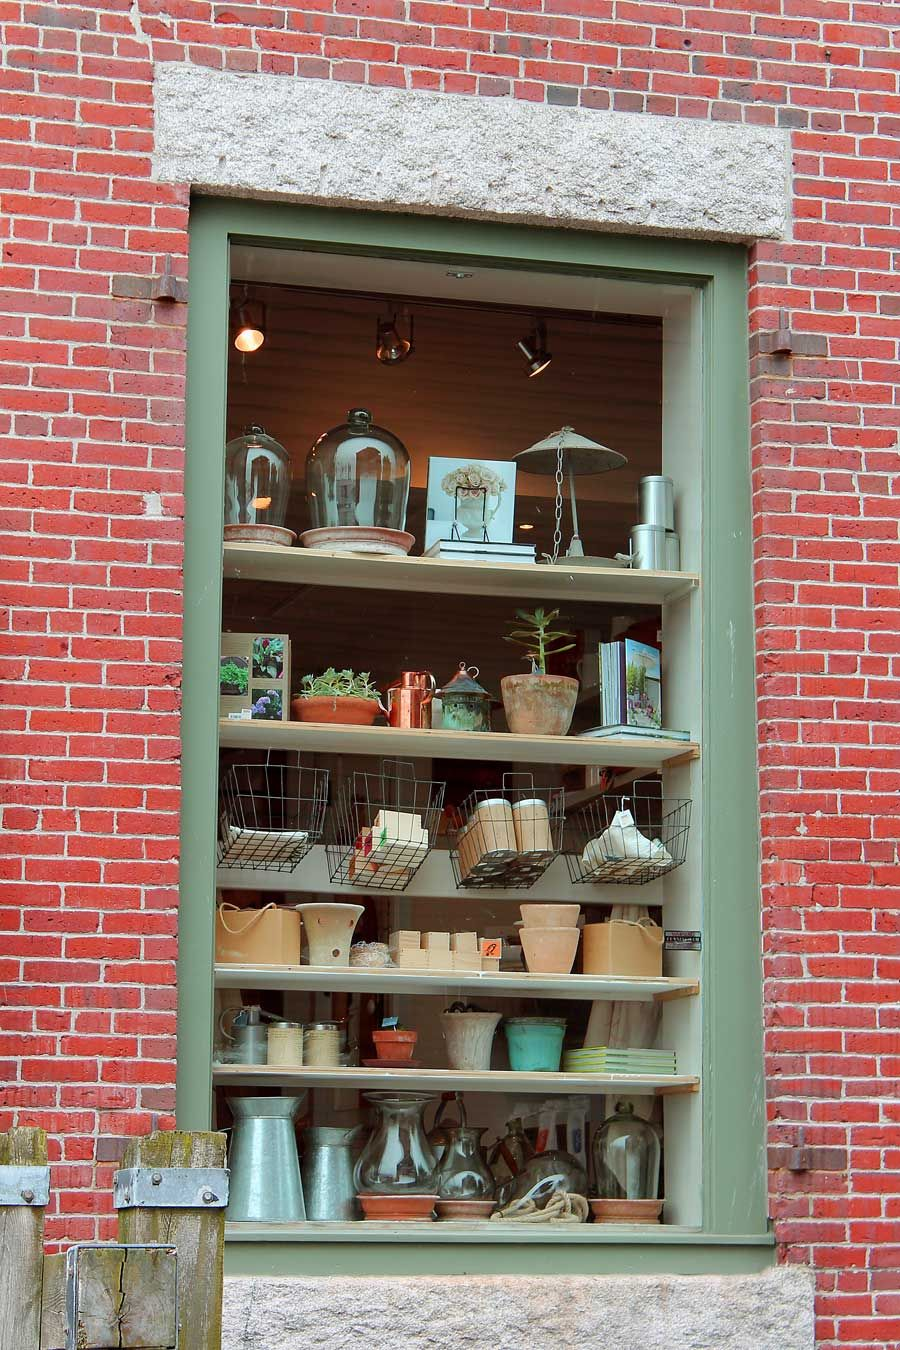 Old Port Wares. The back of one of the shops in the Old Port Exchange in Portland's waterfront provided as much of an enticing shop window as the storefront. Portland, Maine. http://fineartamerica.com/art/all/elizabeth+rains-johnson/all